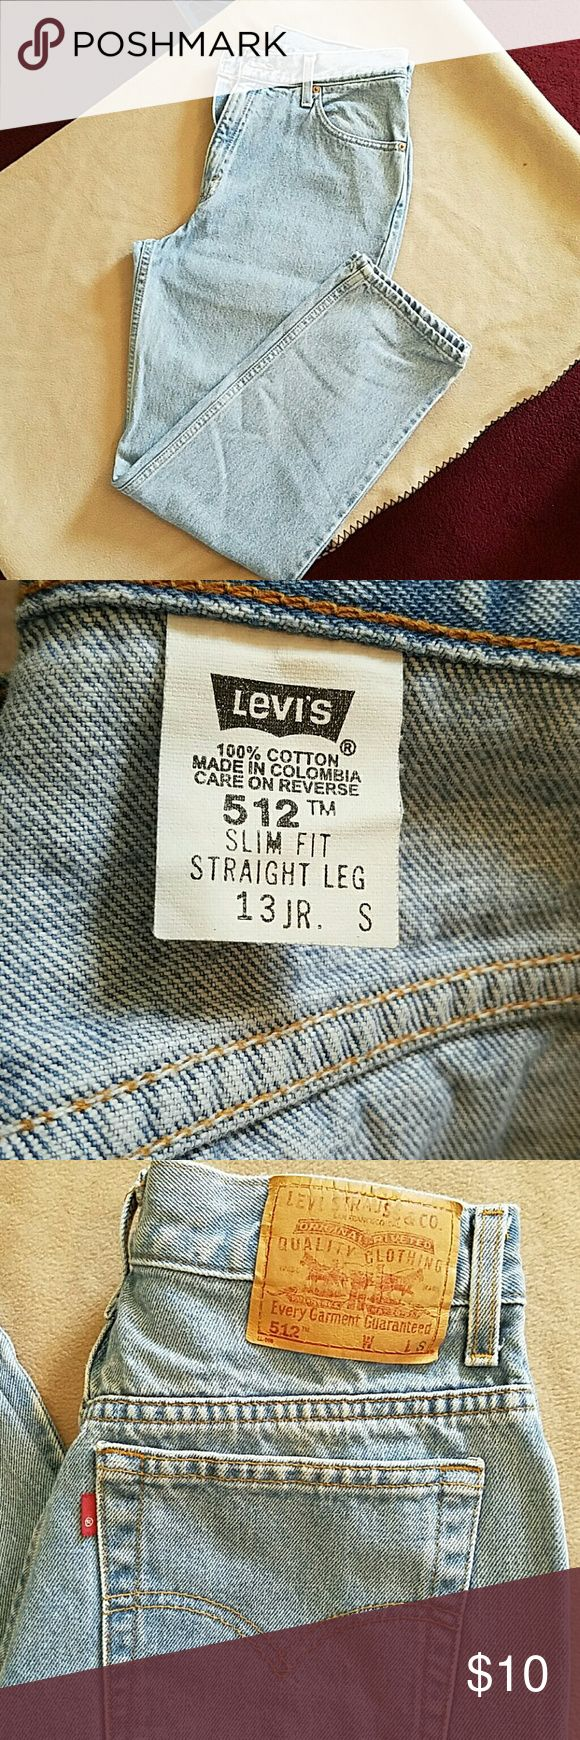 Faded LEVI'S 512 SLIM FIT STRAIGHT LEG JEANS Faded LEVI'S 512 slim fit straight leg jeans. In good condition.  Length is 40 inches.  Inseam is 28 inches.  Waist is  28 inches. Levi's Jeans Straight Leg